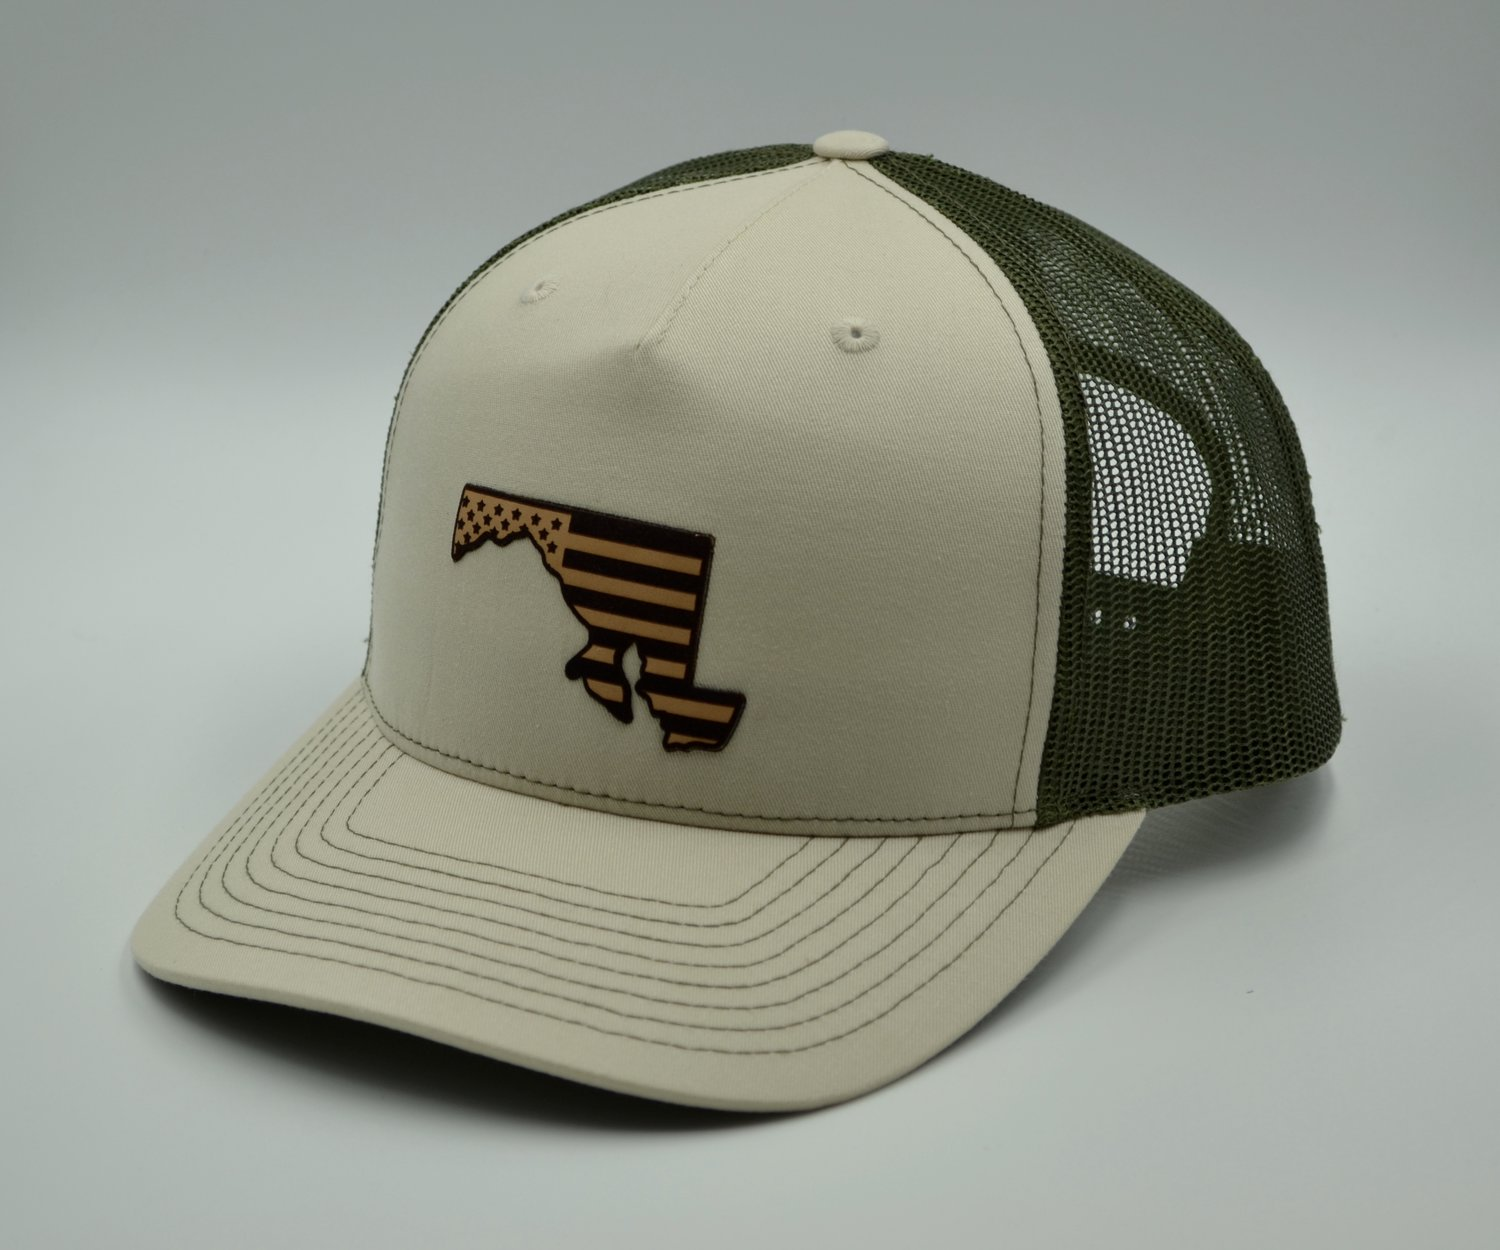 USA State Flag Patch Trucker Hat Khaki and Olive — MARYLANDHATS.COM a428fcc4a86